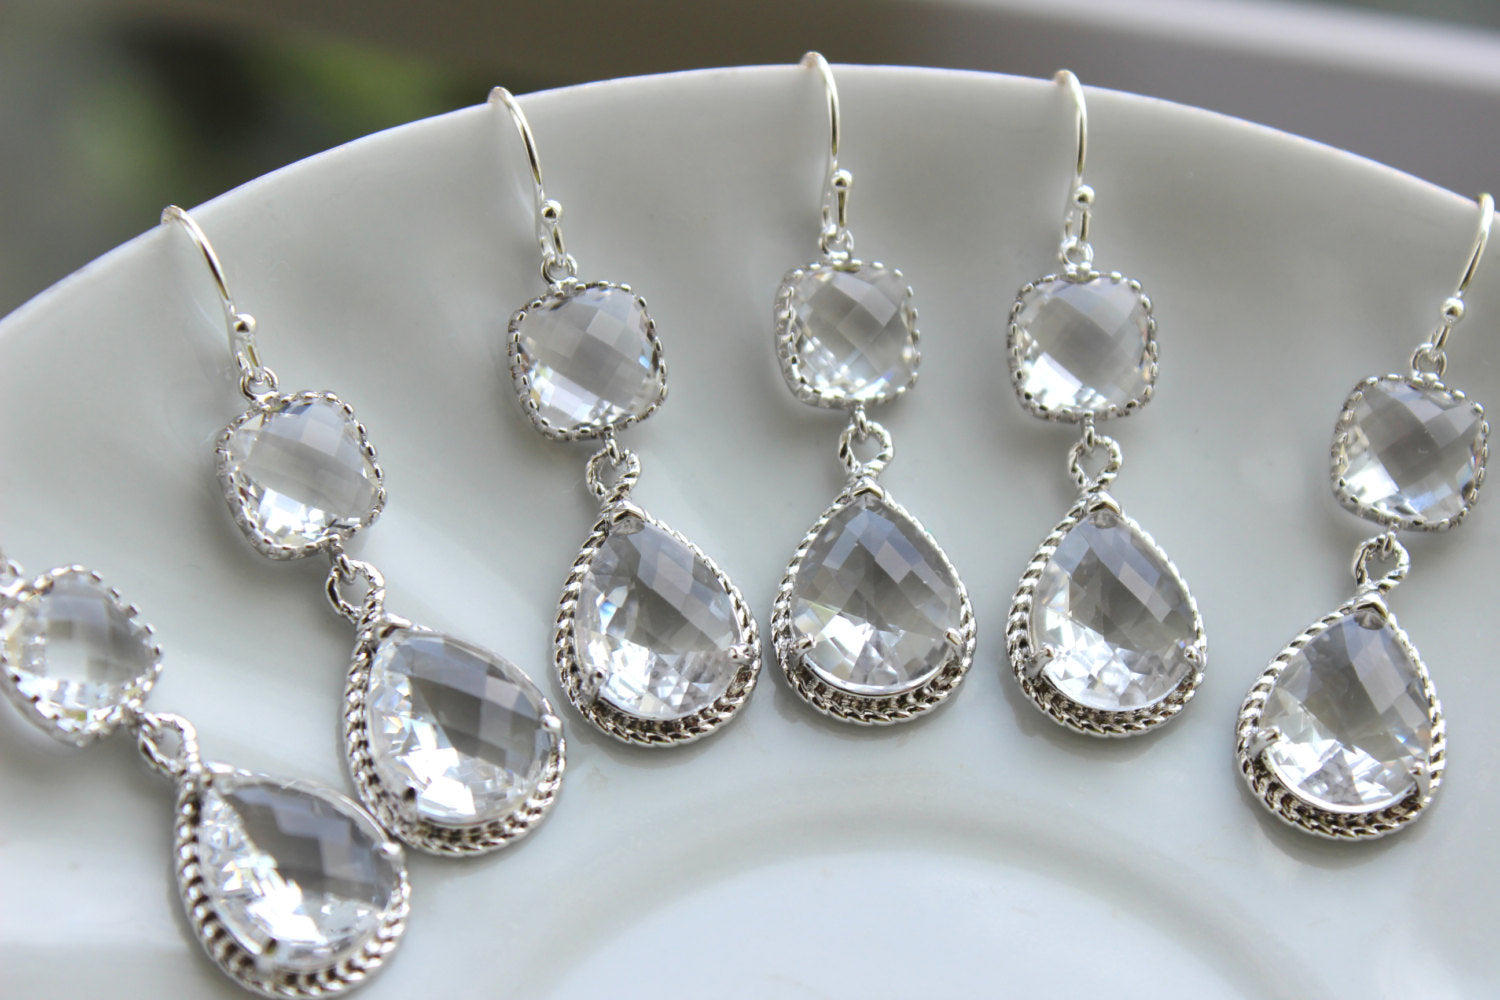 READY TO SHIP 10% Off Set of 2 Wedding Jewelry Crystal Clear Bridesmaid Earrings Bridal Bridesmaid Two Tier Crystal Earrings Silver Teardrop